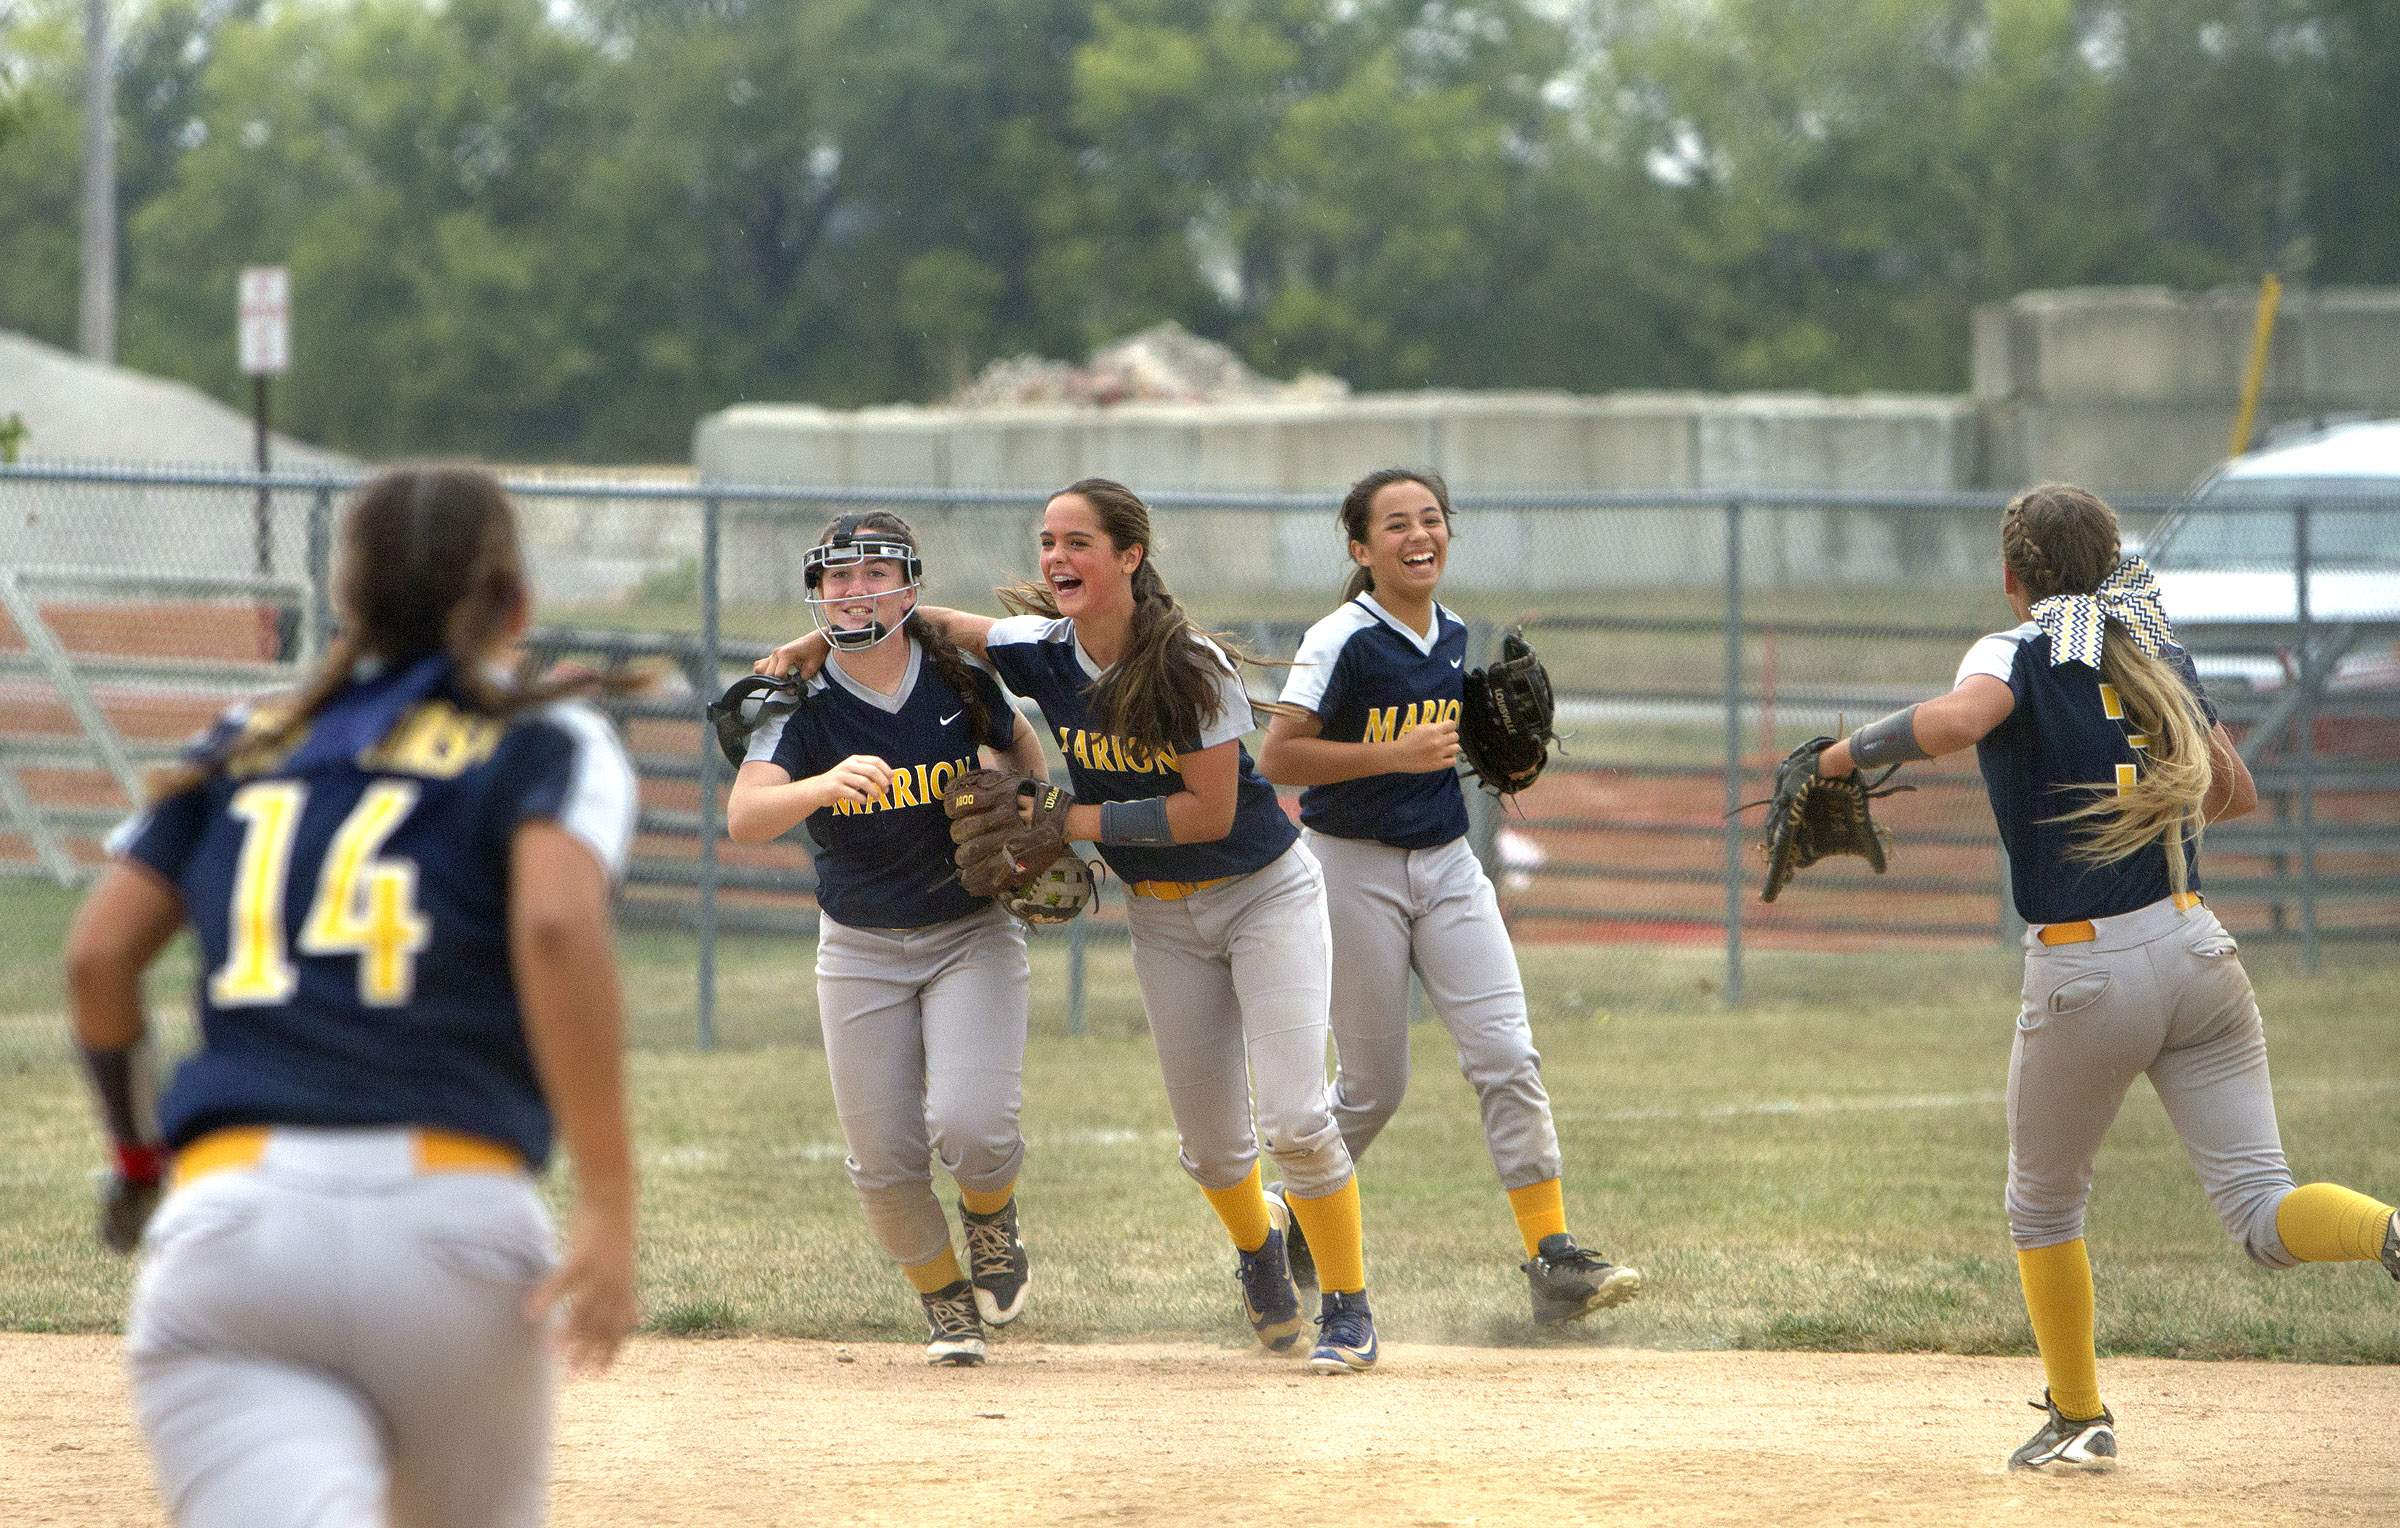 Marion's players celebrate after Amelia Browning (wearing mask) makes a catch for the last out of Tuesday's game.